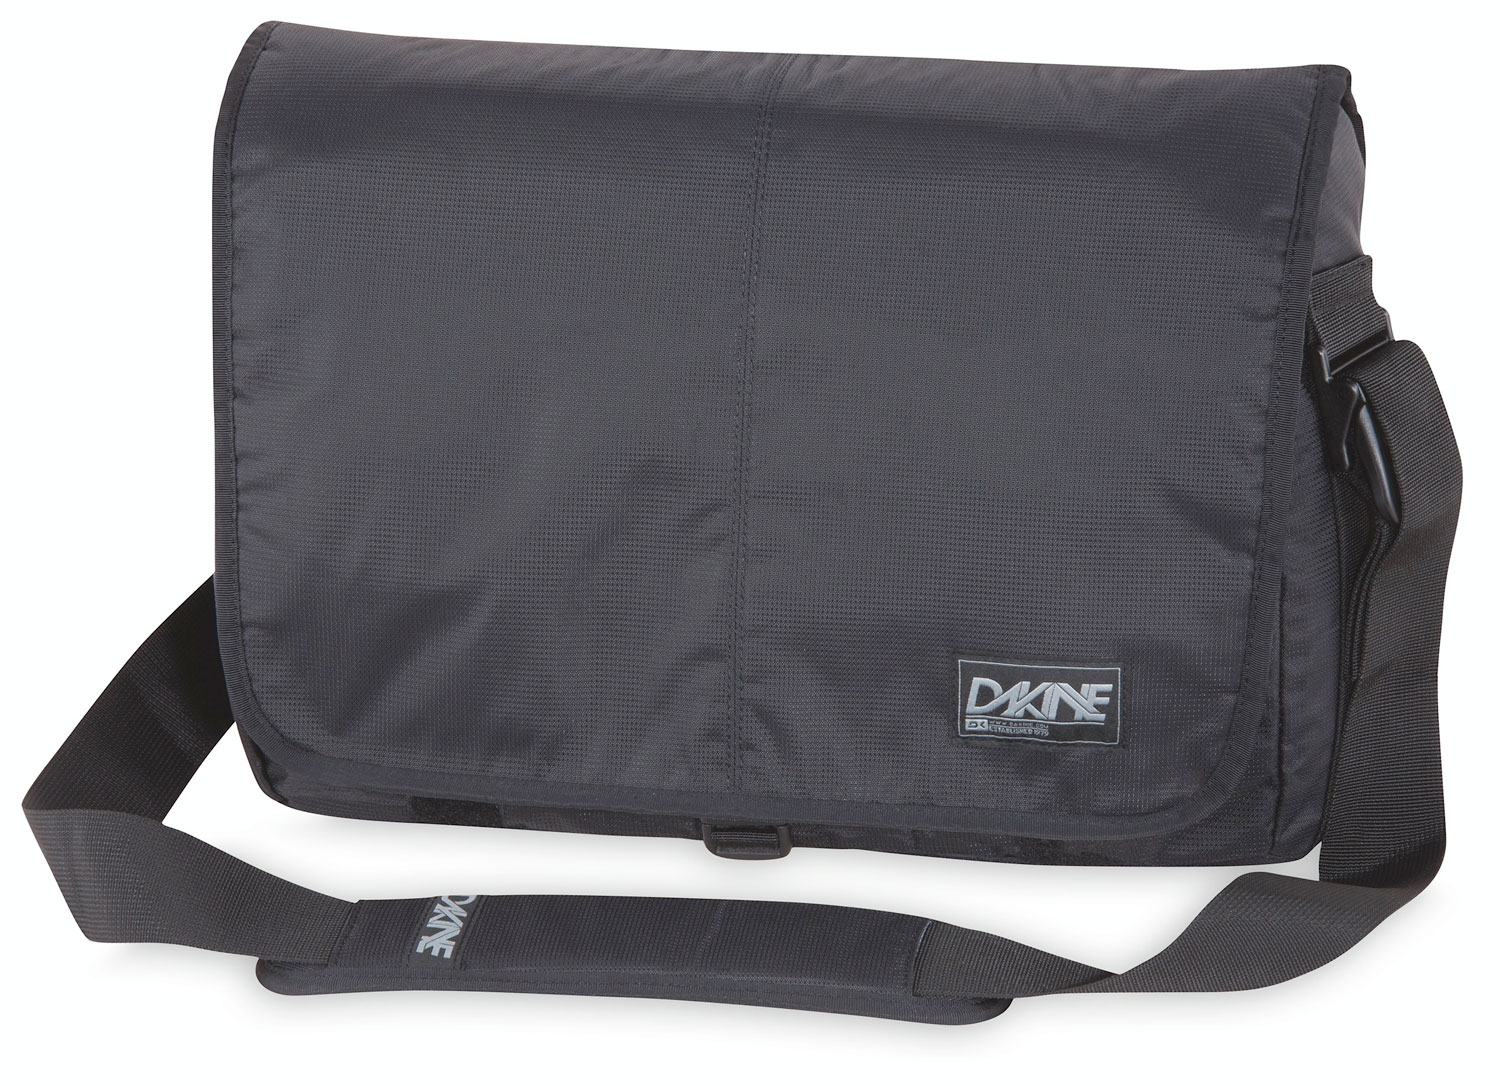 "Surf The security of one's laptop is an investment in itself, but with the Dakine Hudson 20L Laptop Bag those worries can be put to rest. With a deep volume of 20L, adequate space is set aside for laptops of various sizes and 600D Polyester makeup assures the bag will hold up in everyday use. Numerous internal organizing pockets make the bag a great choice for taking to school, while an adjustable shoulder strap is a nice addition for comfort. This Dakine Hudson Laptop Bag offers the protection such a prized item deserves!Key Features of the Dakine Hudson 20L Laptop Bag:  1200 cu. in.  [ 20L ]  17 x 11.5 x 5""  [ 43 x 29 x 13cm ]  600D Polyester  420D Nylon Dobby ( Black    Padded sleeve fits most 15"" laptops  adjustable padded shoulder strap   Internal organizer pockets - $34.95"